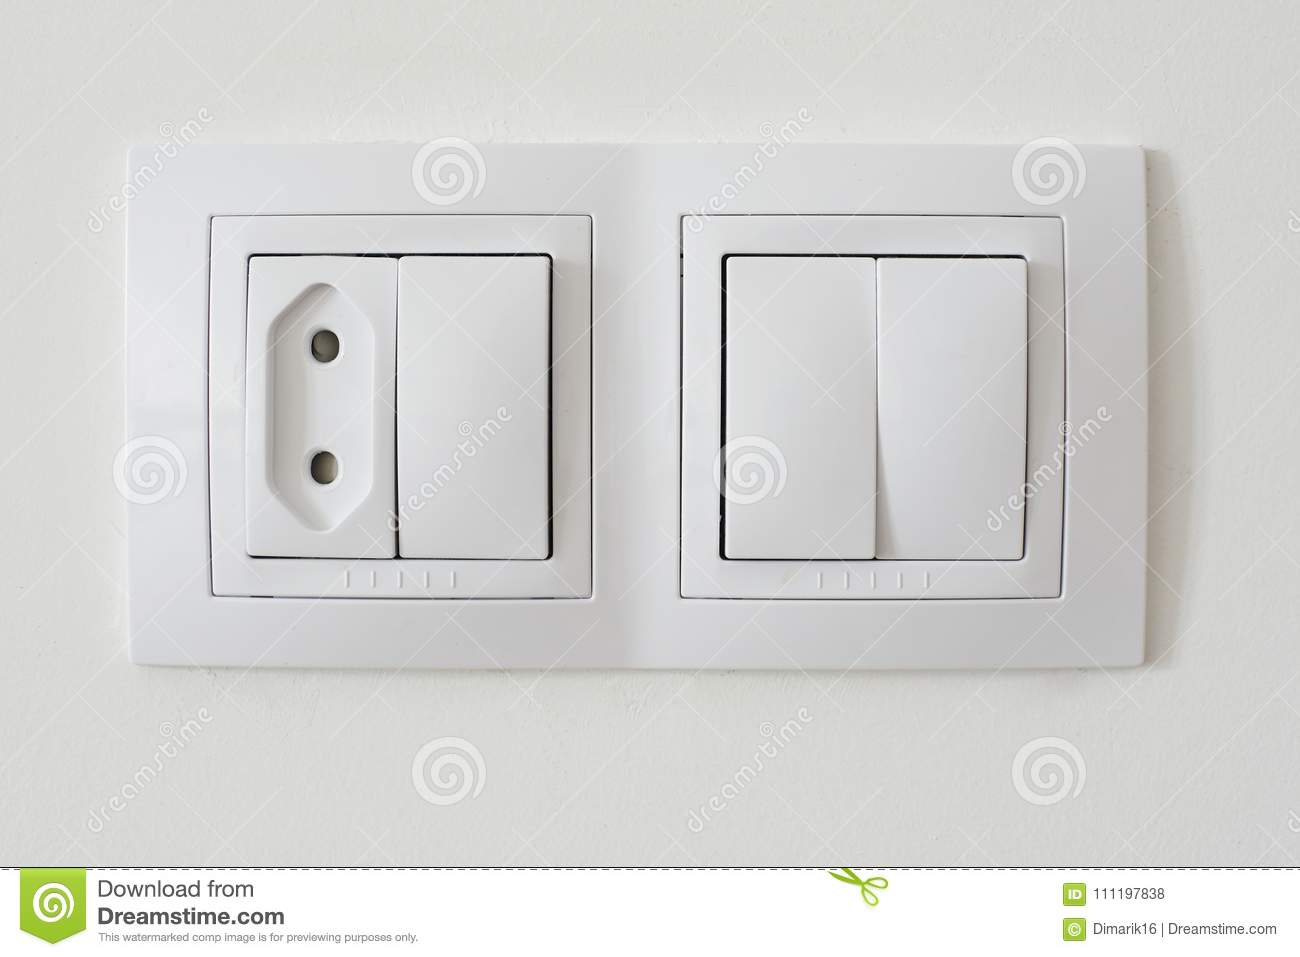 Light switch socket stock photo. Image of outlet, holes - 111197838